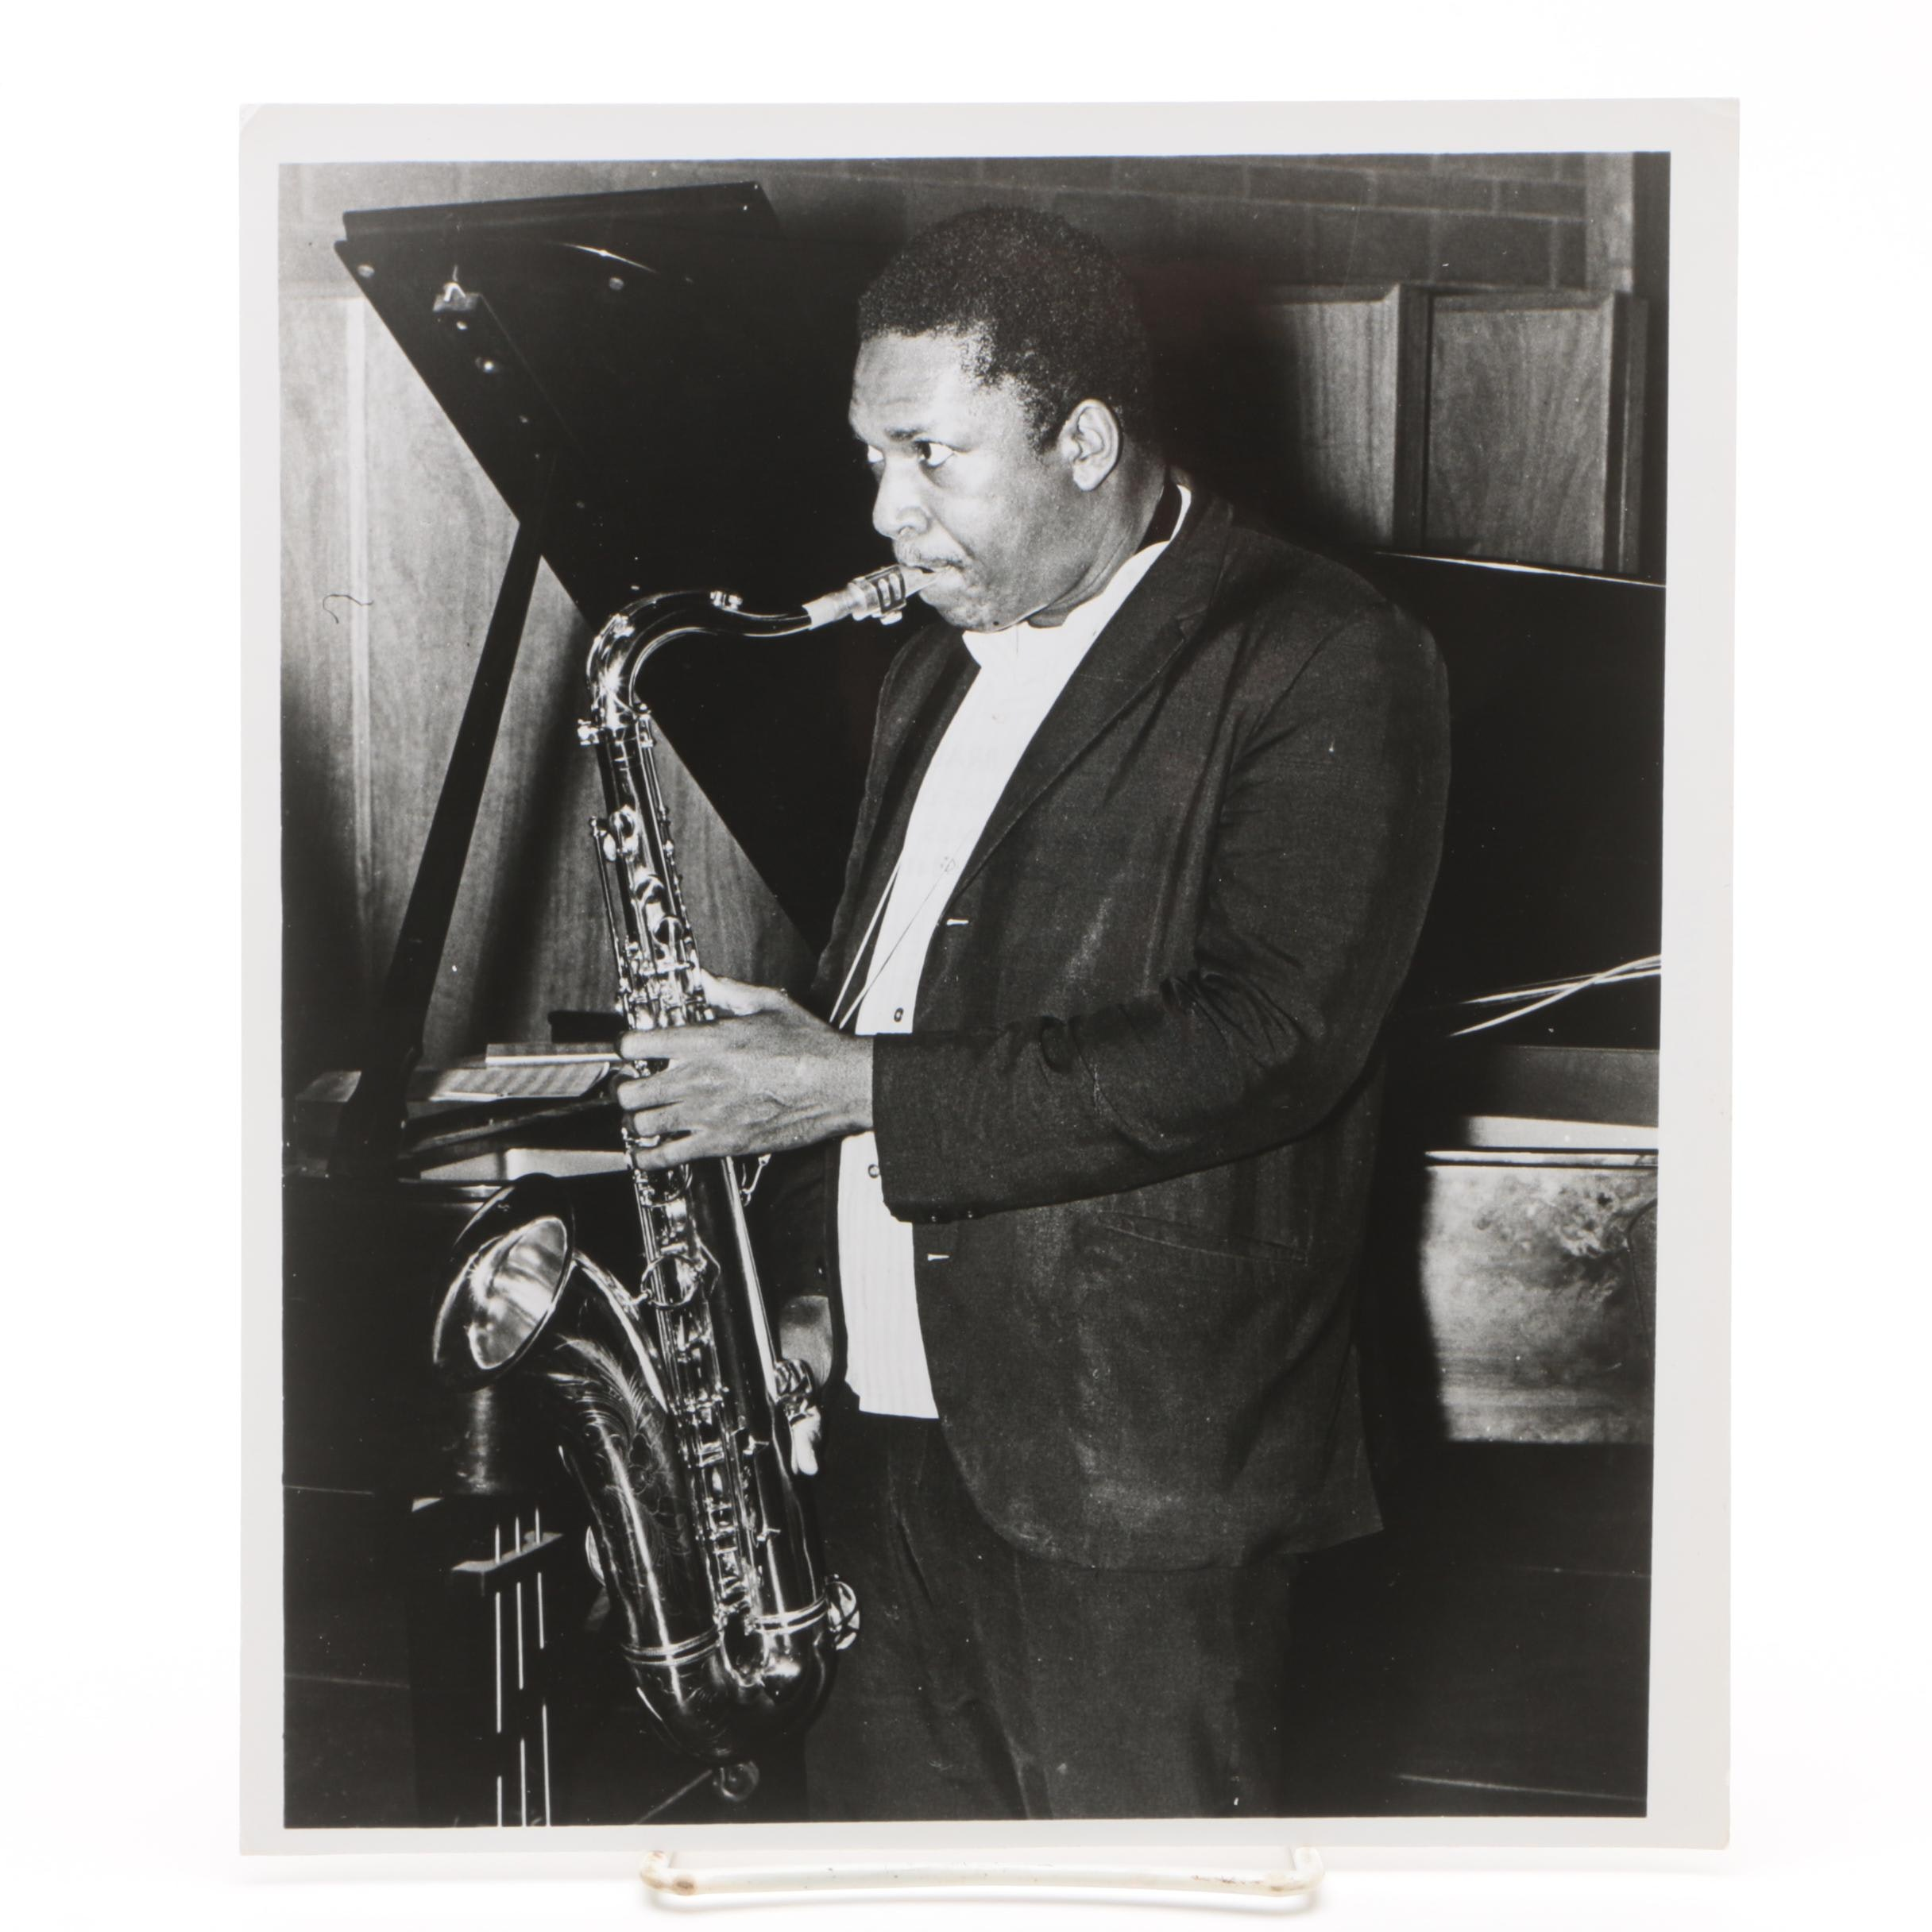 Gelatin-Silver Photograph of John Coltrane from the Jack Bradley Collection